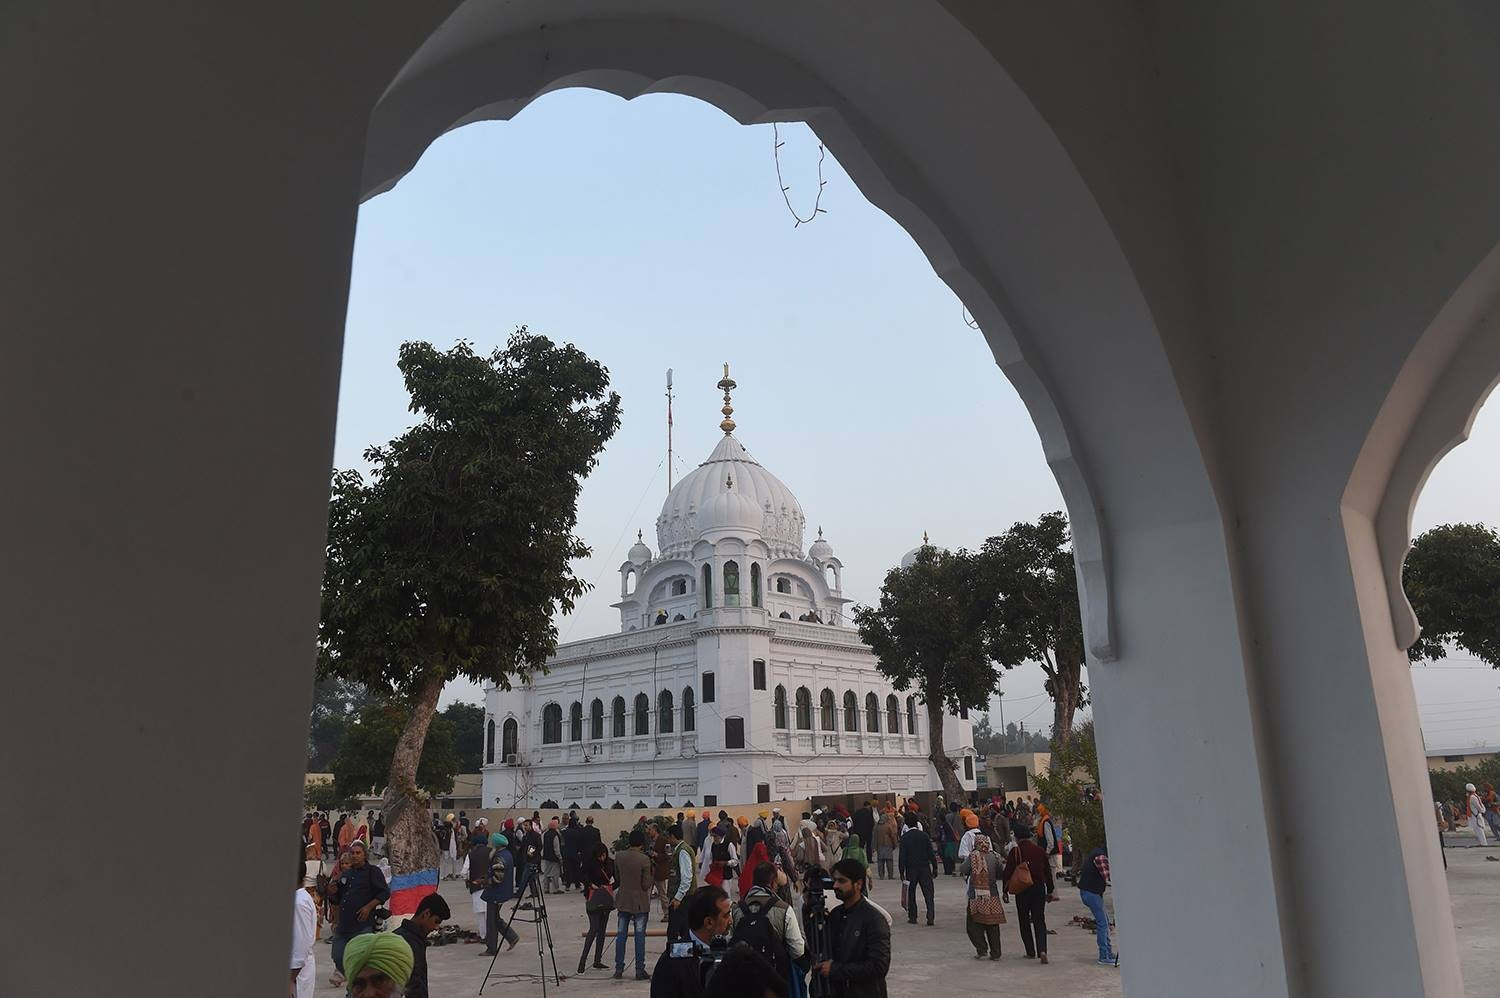 Sikh Pilgrims gather in front of Kartarpur Gurdwara Sahib before the groundbreaking ceremony. — AFP